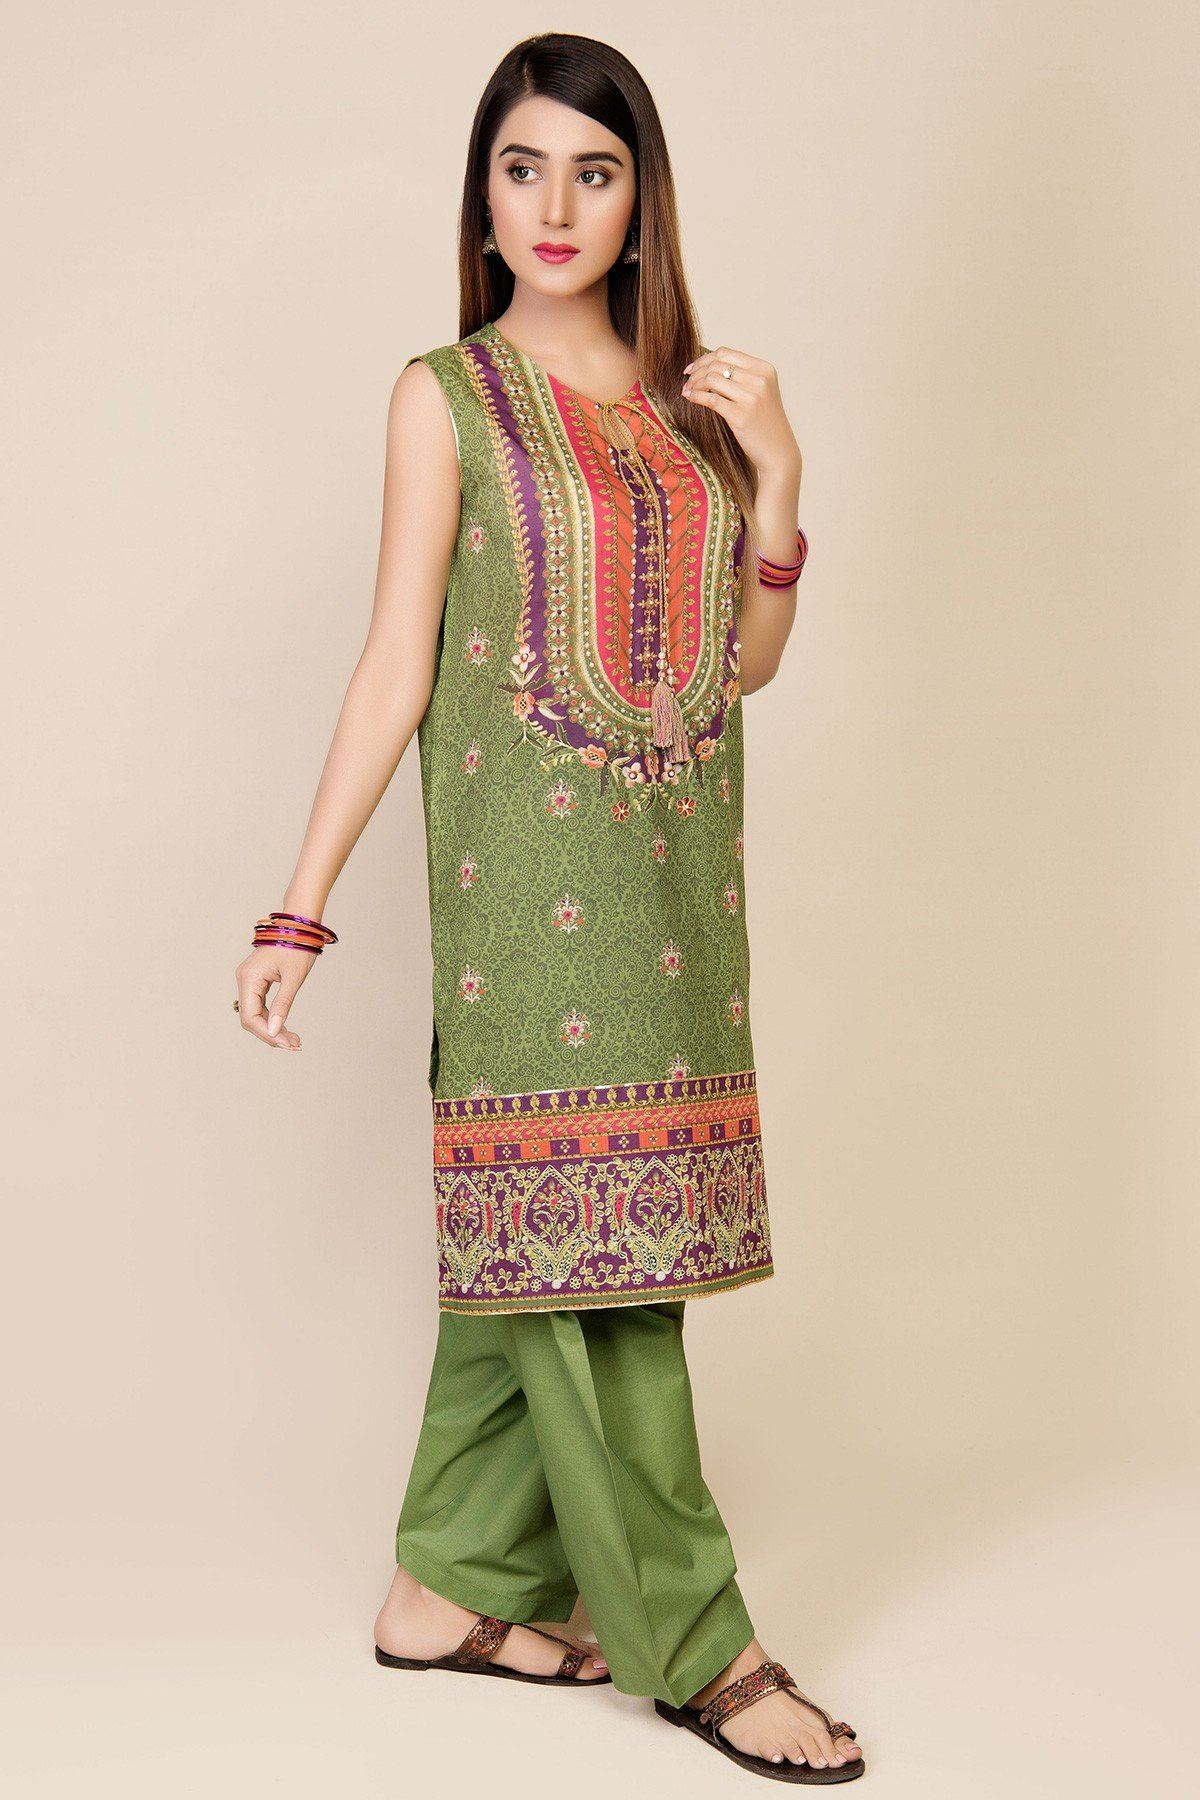 Kayseria 18033-Embroided 3pc Marina dress with printed wool shawl. - gracestore.pk